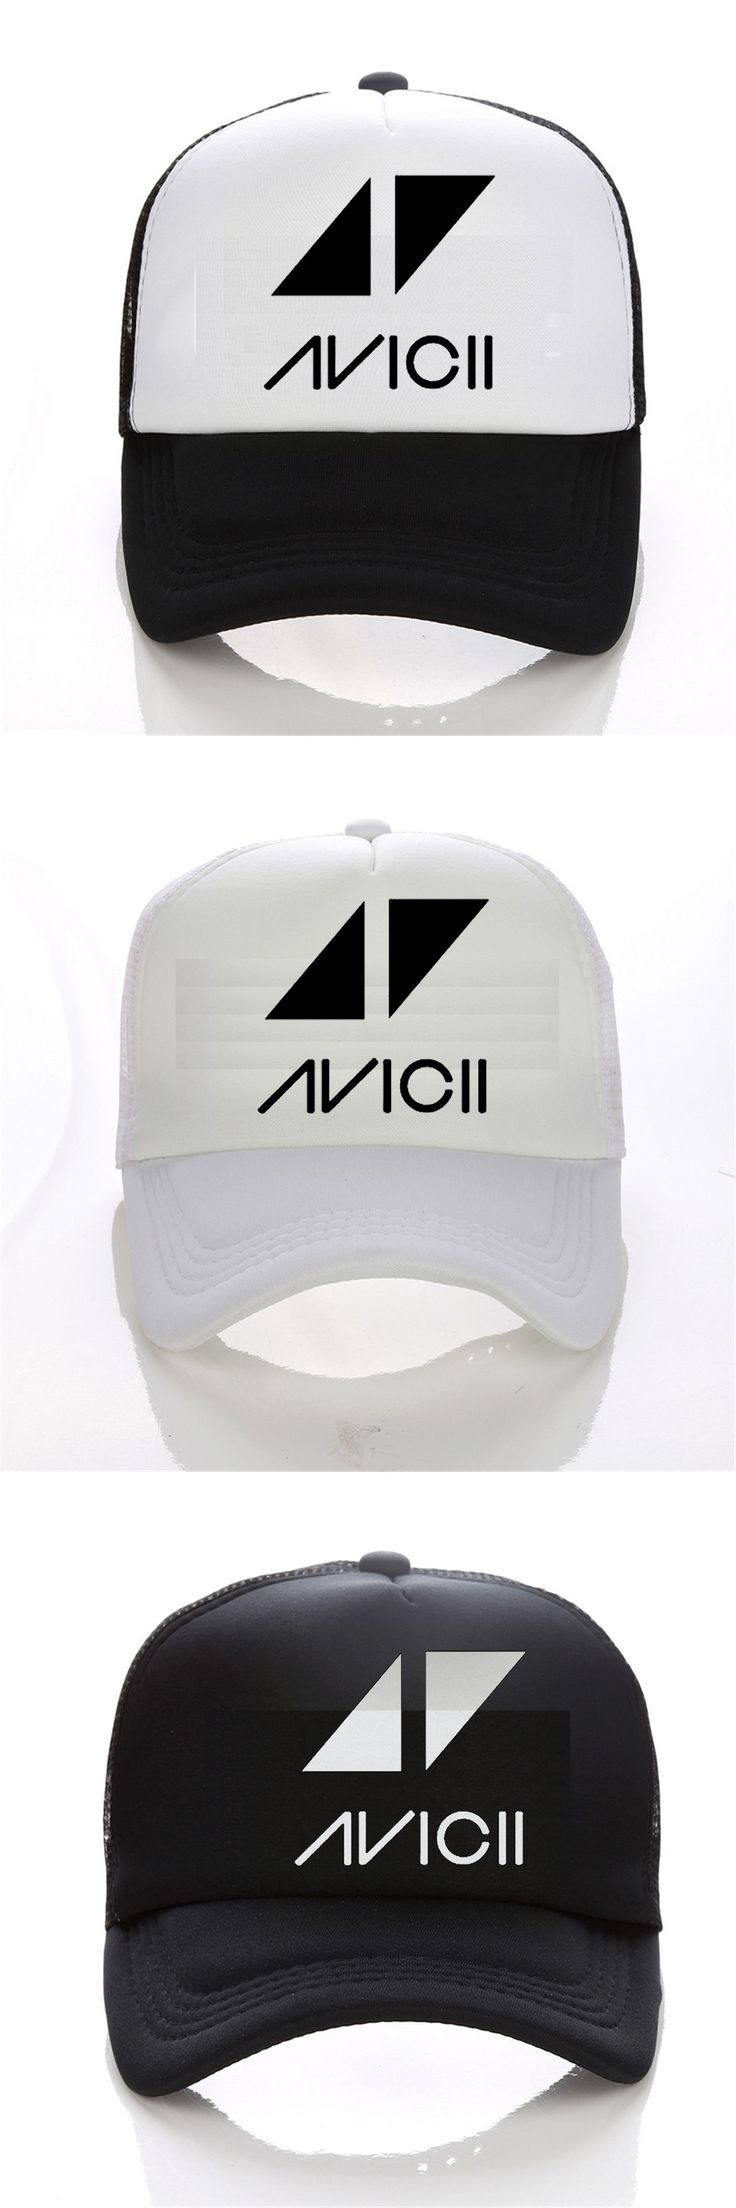 Fashionable AVICII cap DON'T WAKE ME UP DANCE HOUSE TRANCE DJ MUSIC HOUSE MENS baseball cap casual  man